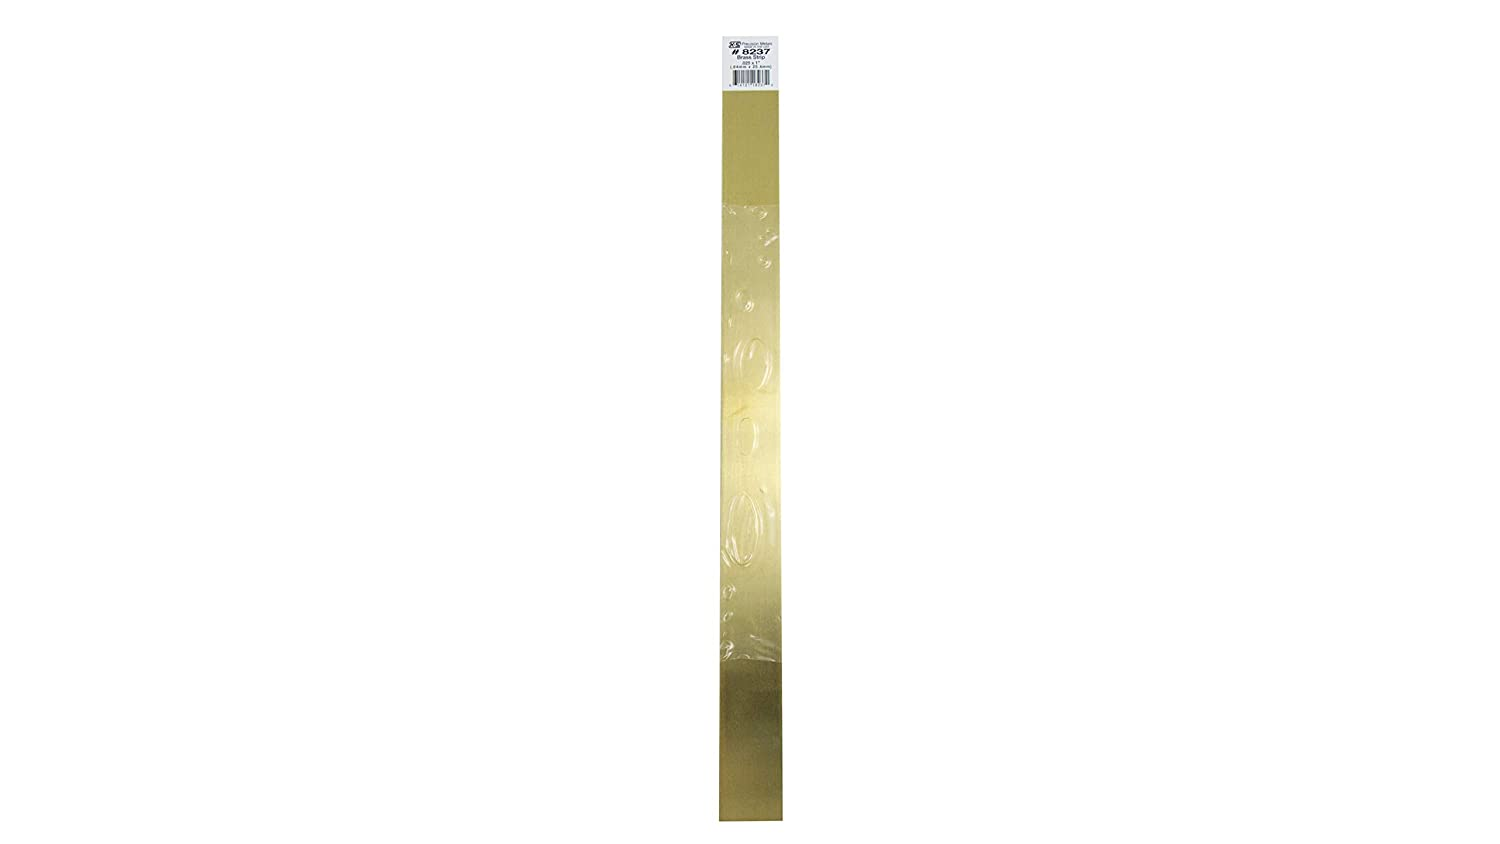 K&S Precision Metals 8237 Brass Strip, 0.025